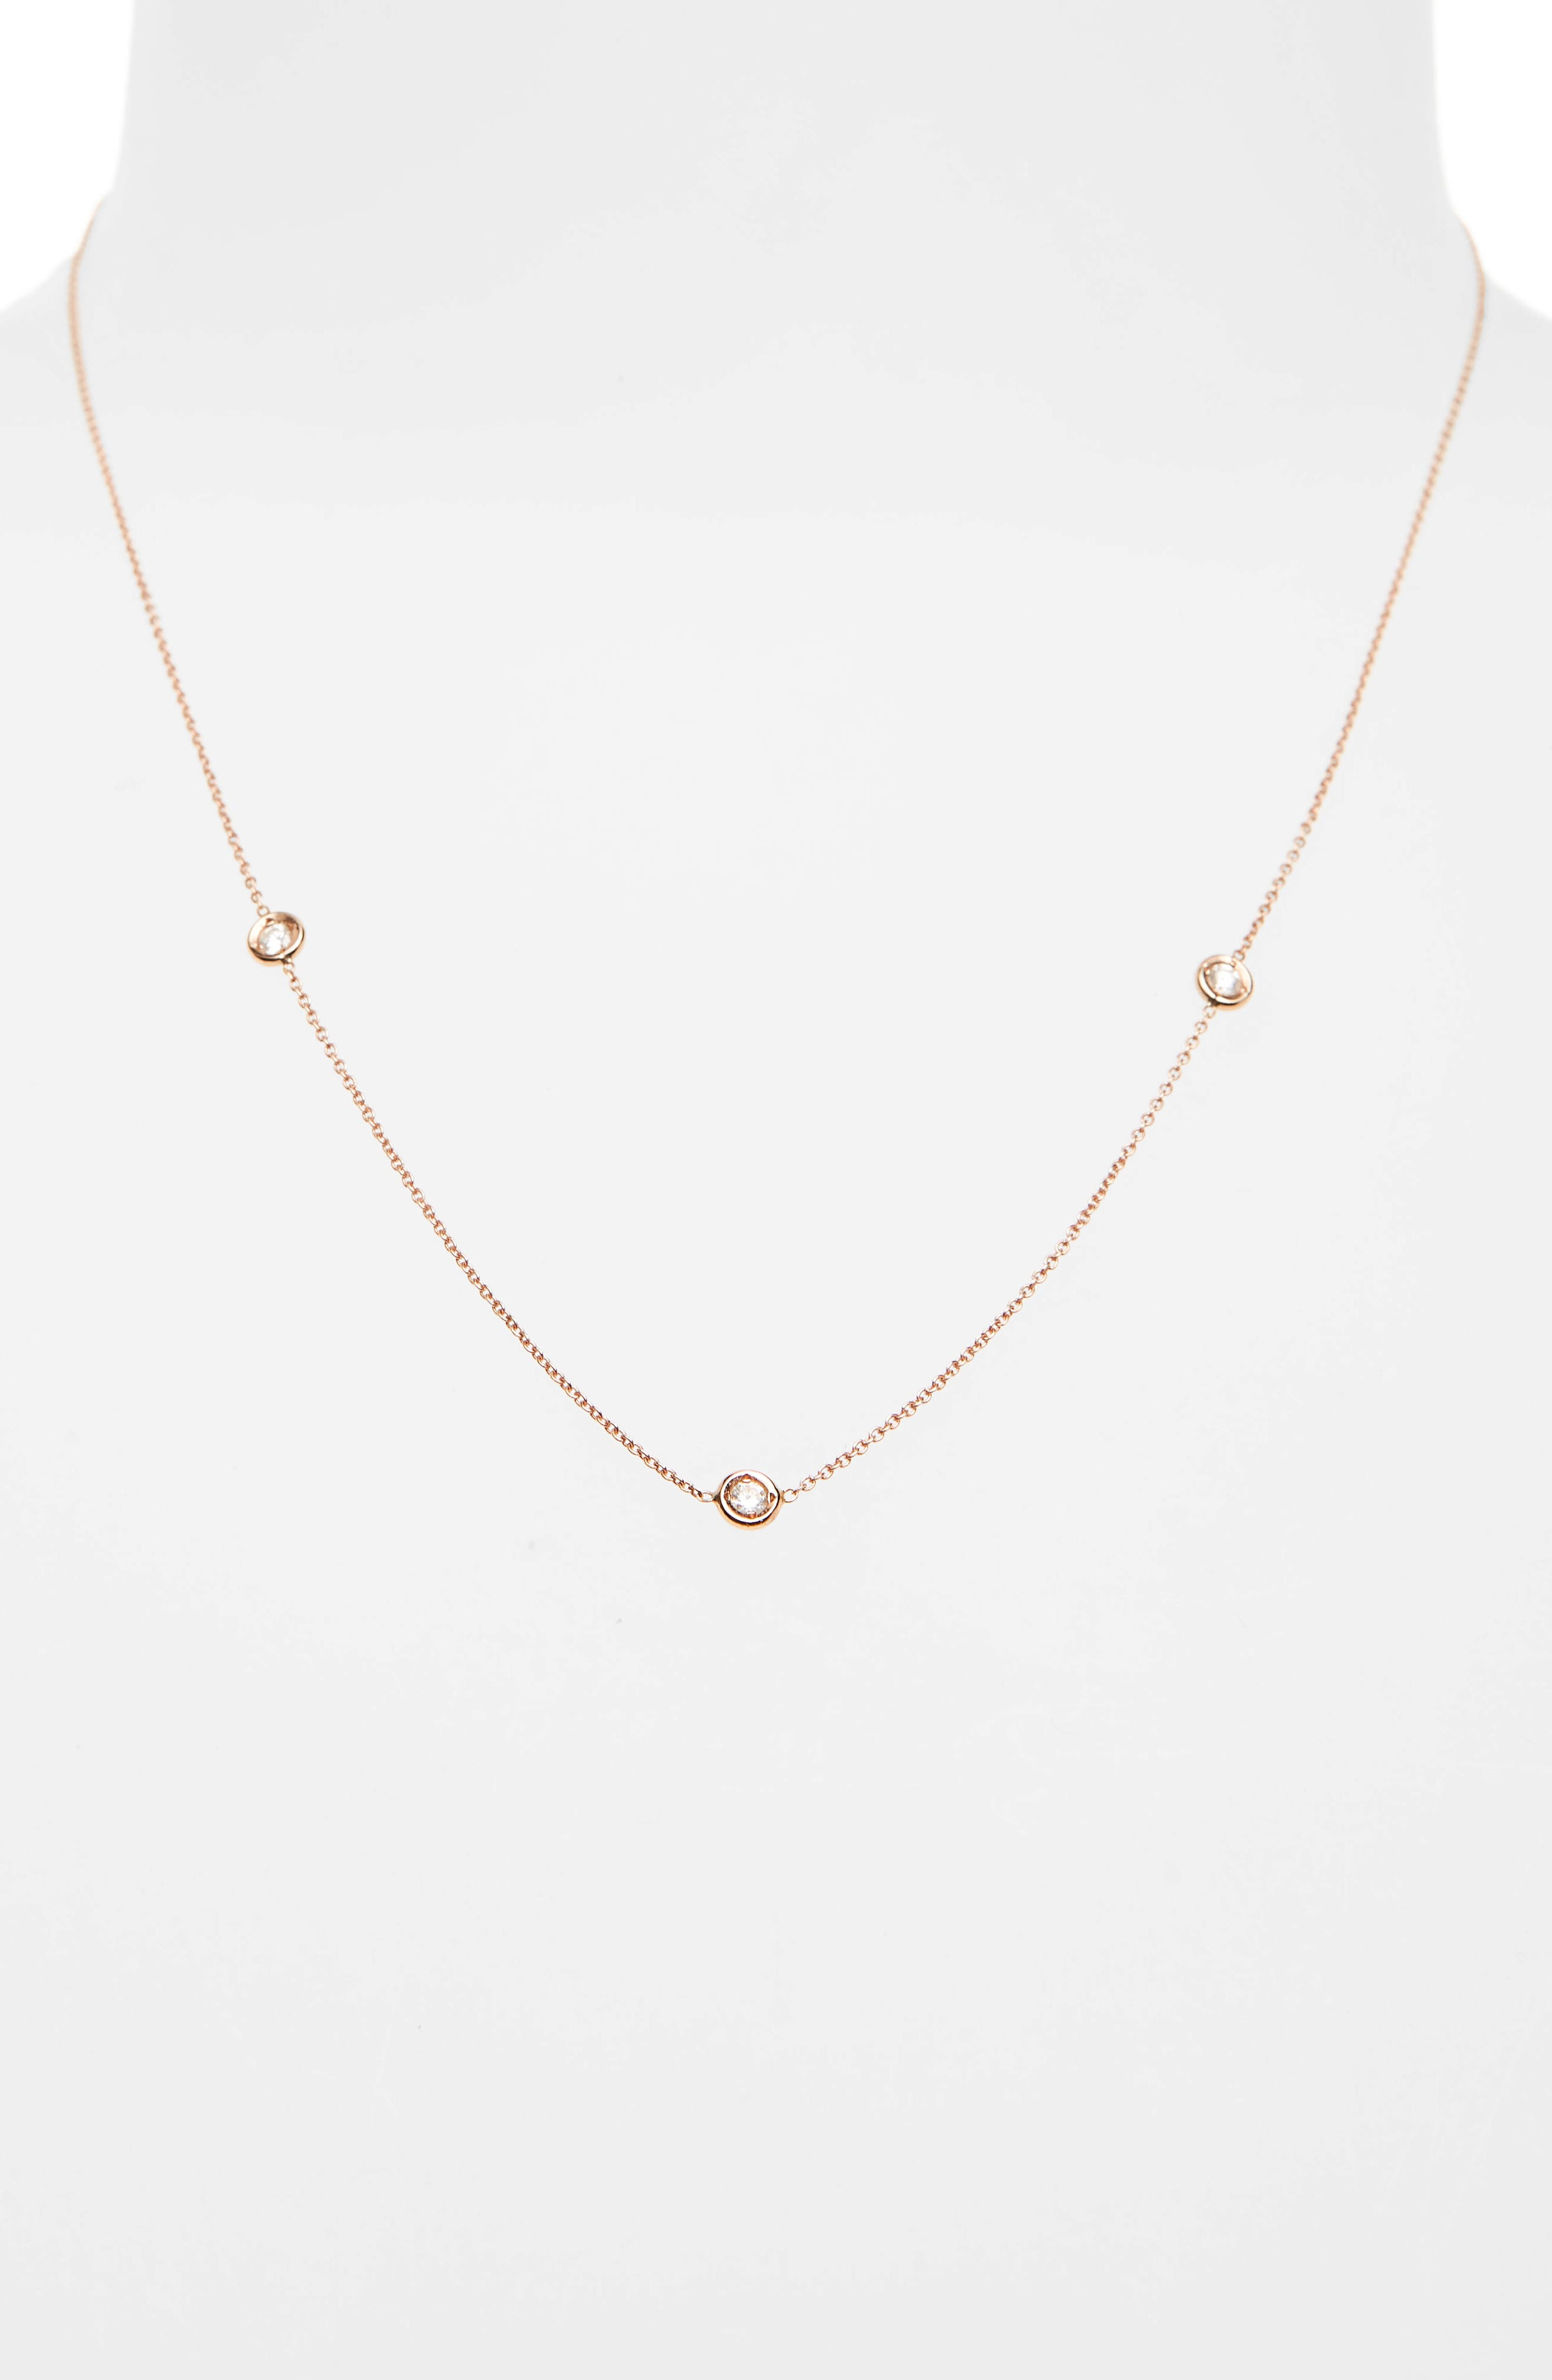 ROBERTO COIN,                             3-Station Diamond Necklace,                             Alternate thumbnail 2, color,                             ROSE GOLD